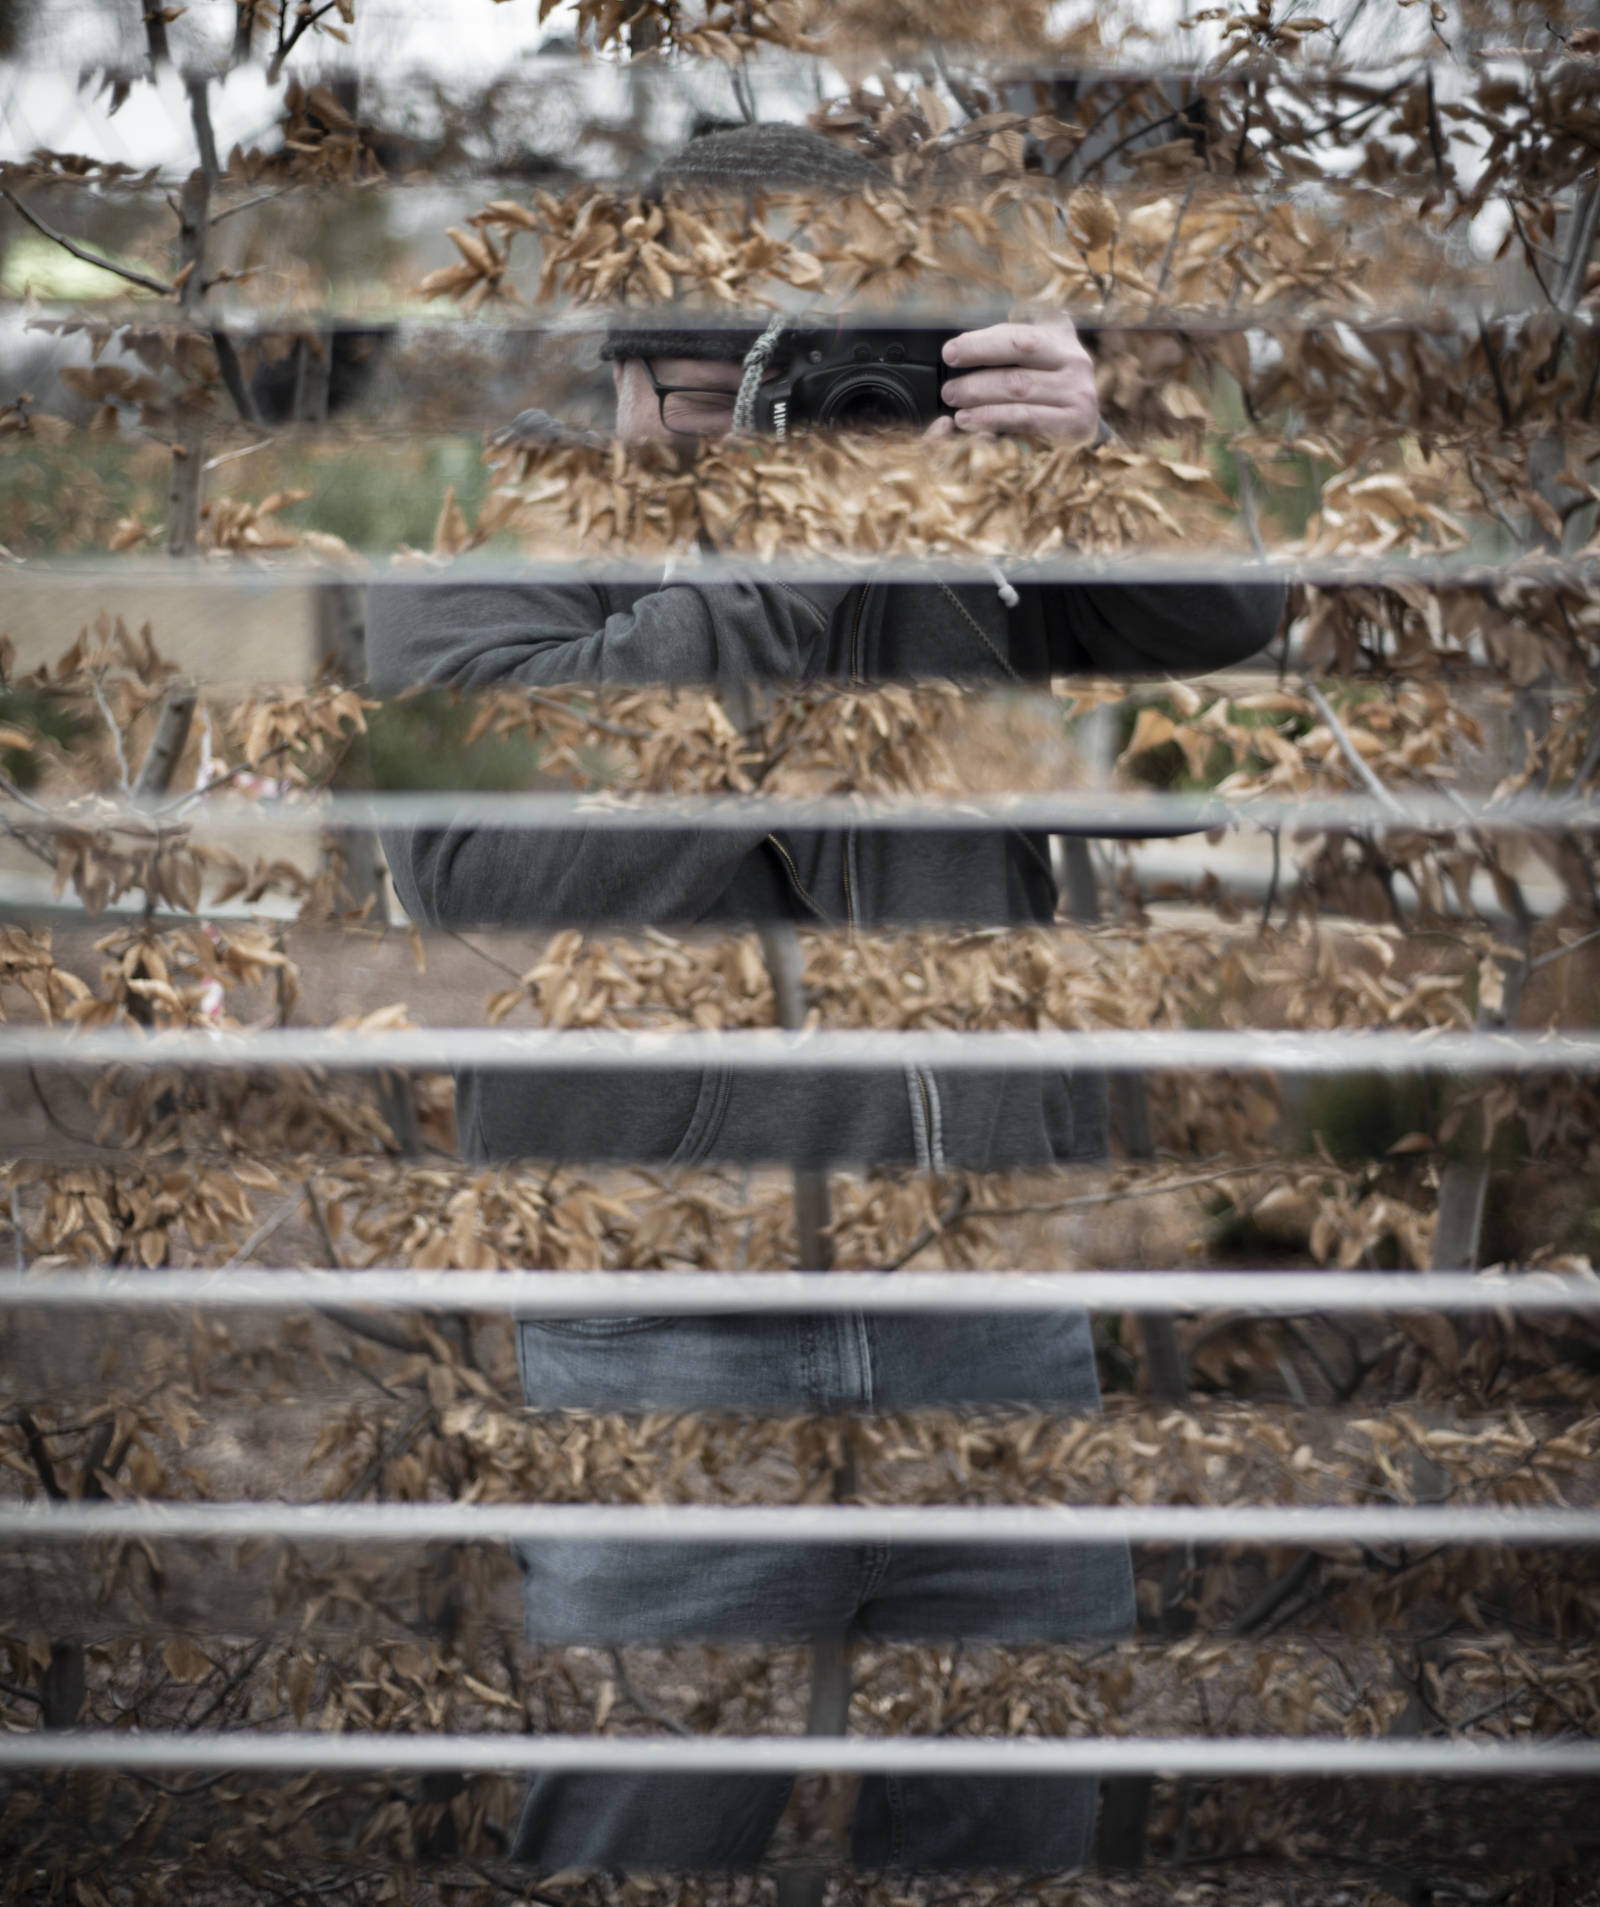 Gathering Place, I found these mirrored slats in an area with some other interactive elements. It was a cold first day of the year, staying in the twenties with a good breeze.  #dothework  #goanddo   #liveyourpassion   #365  #365project   #gatheringplace   #tulsaok  #travelok   #oklahoma